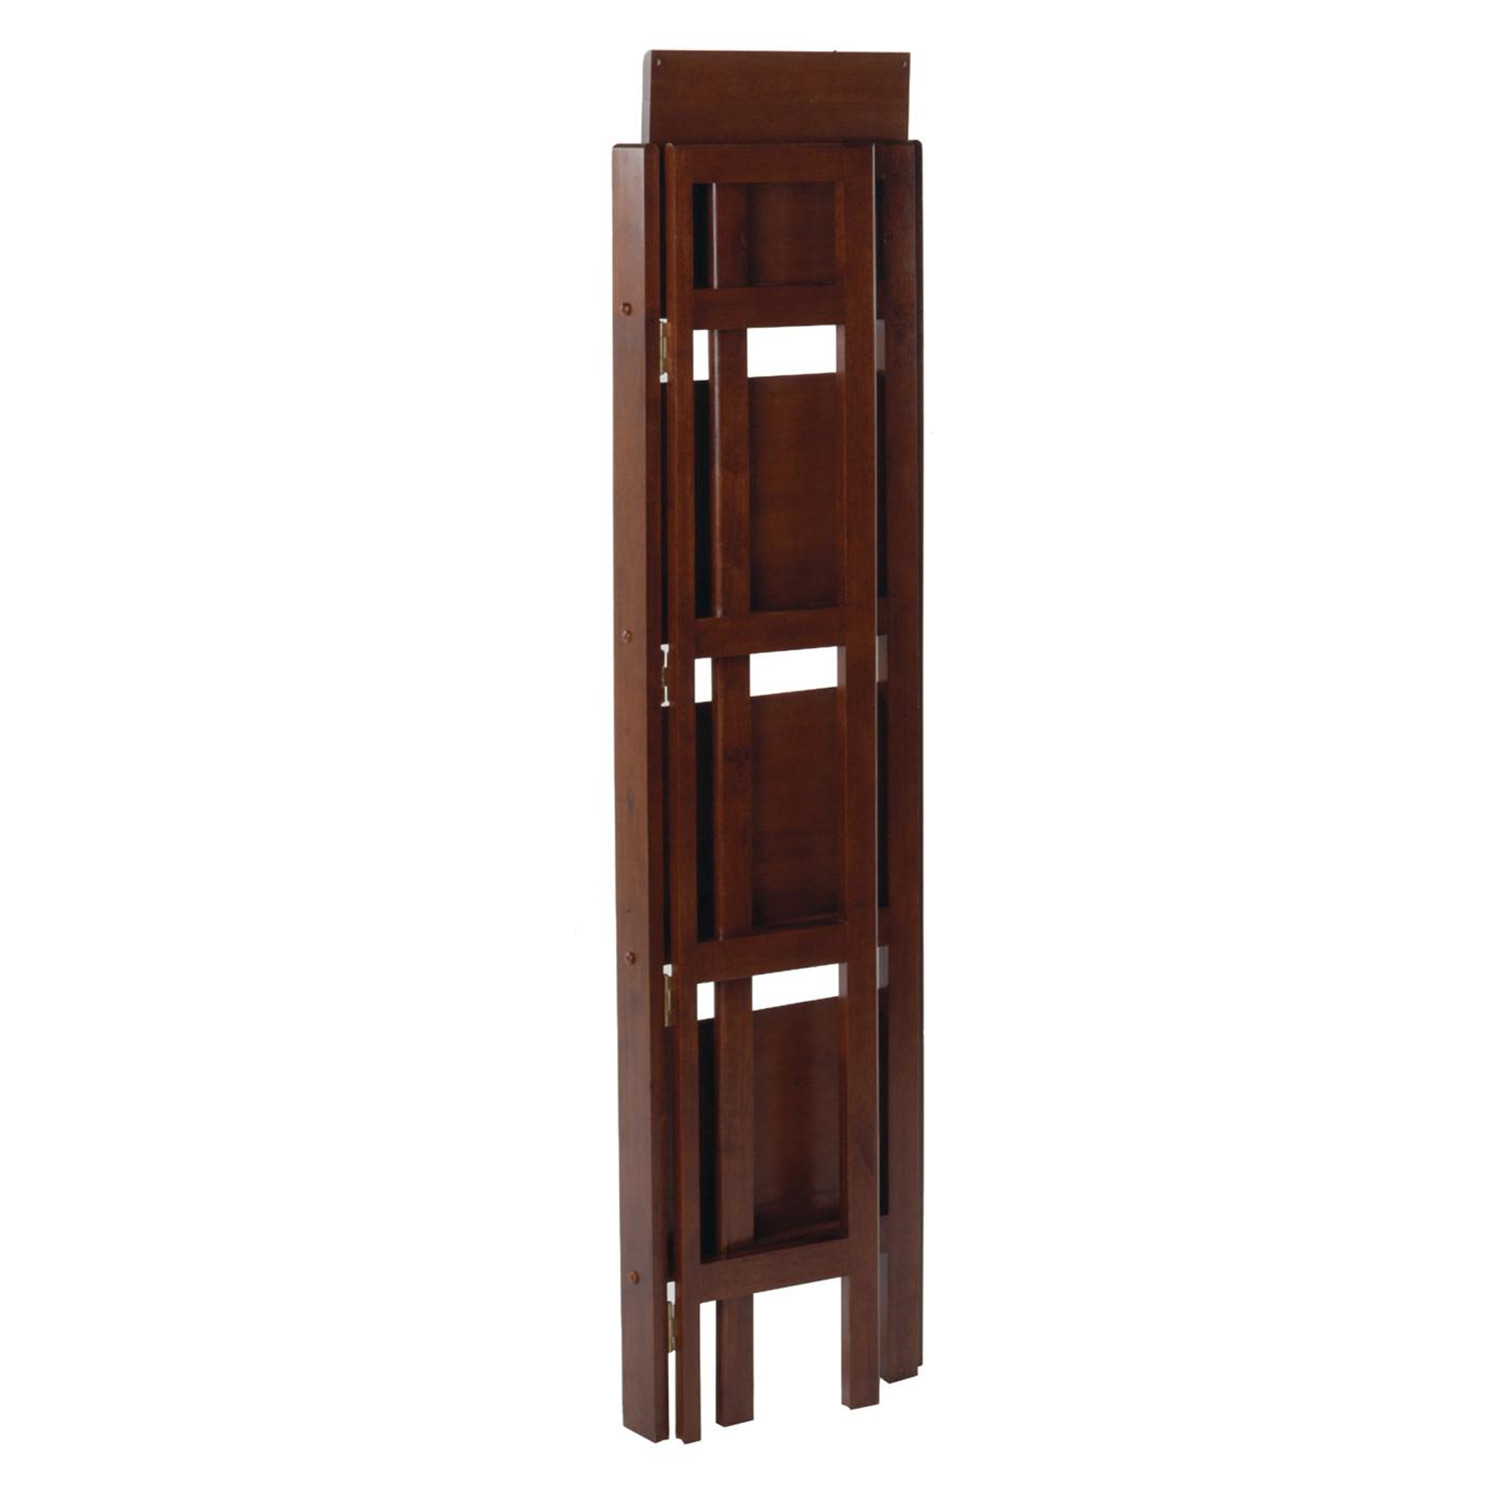 Winsome 4 tier folding shelf narrow by oj commerce 94852 Folding bookshelf